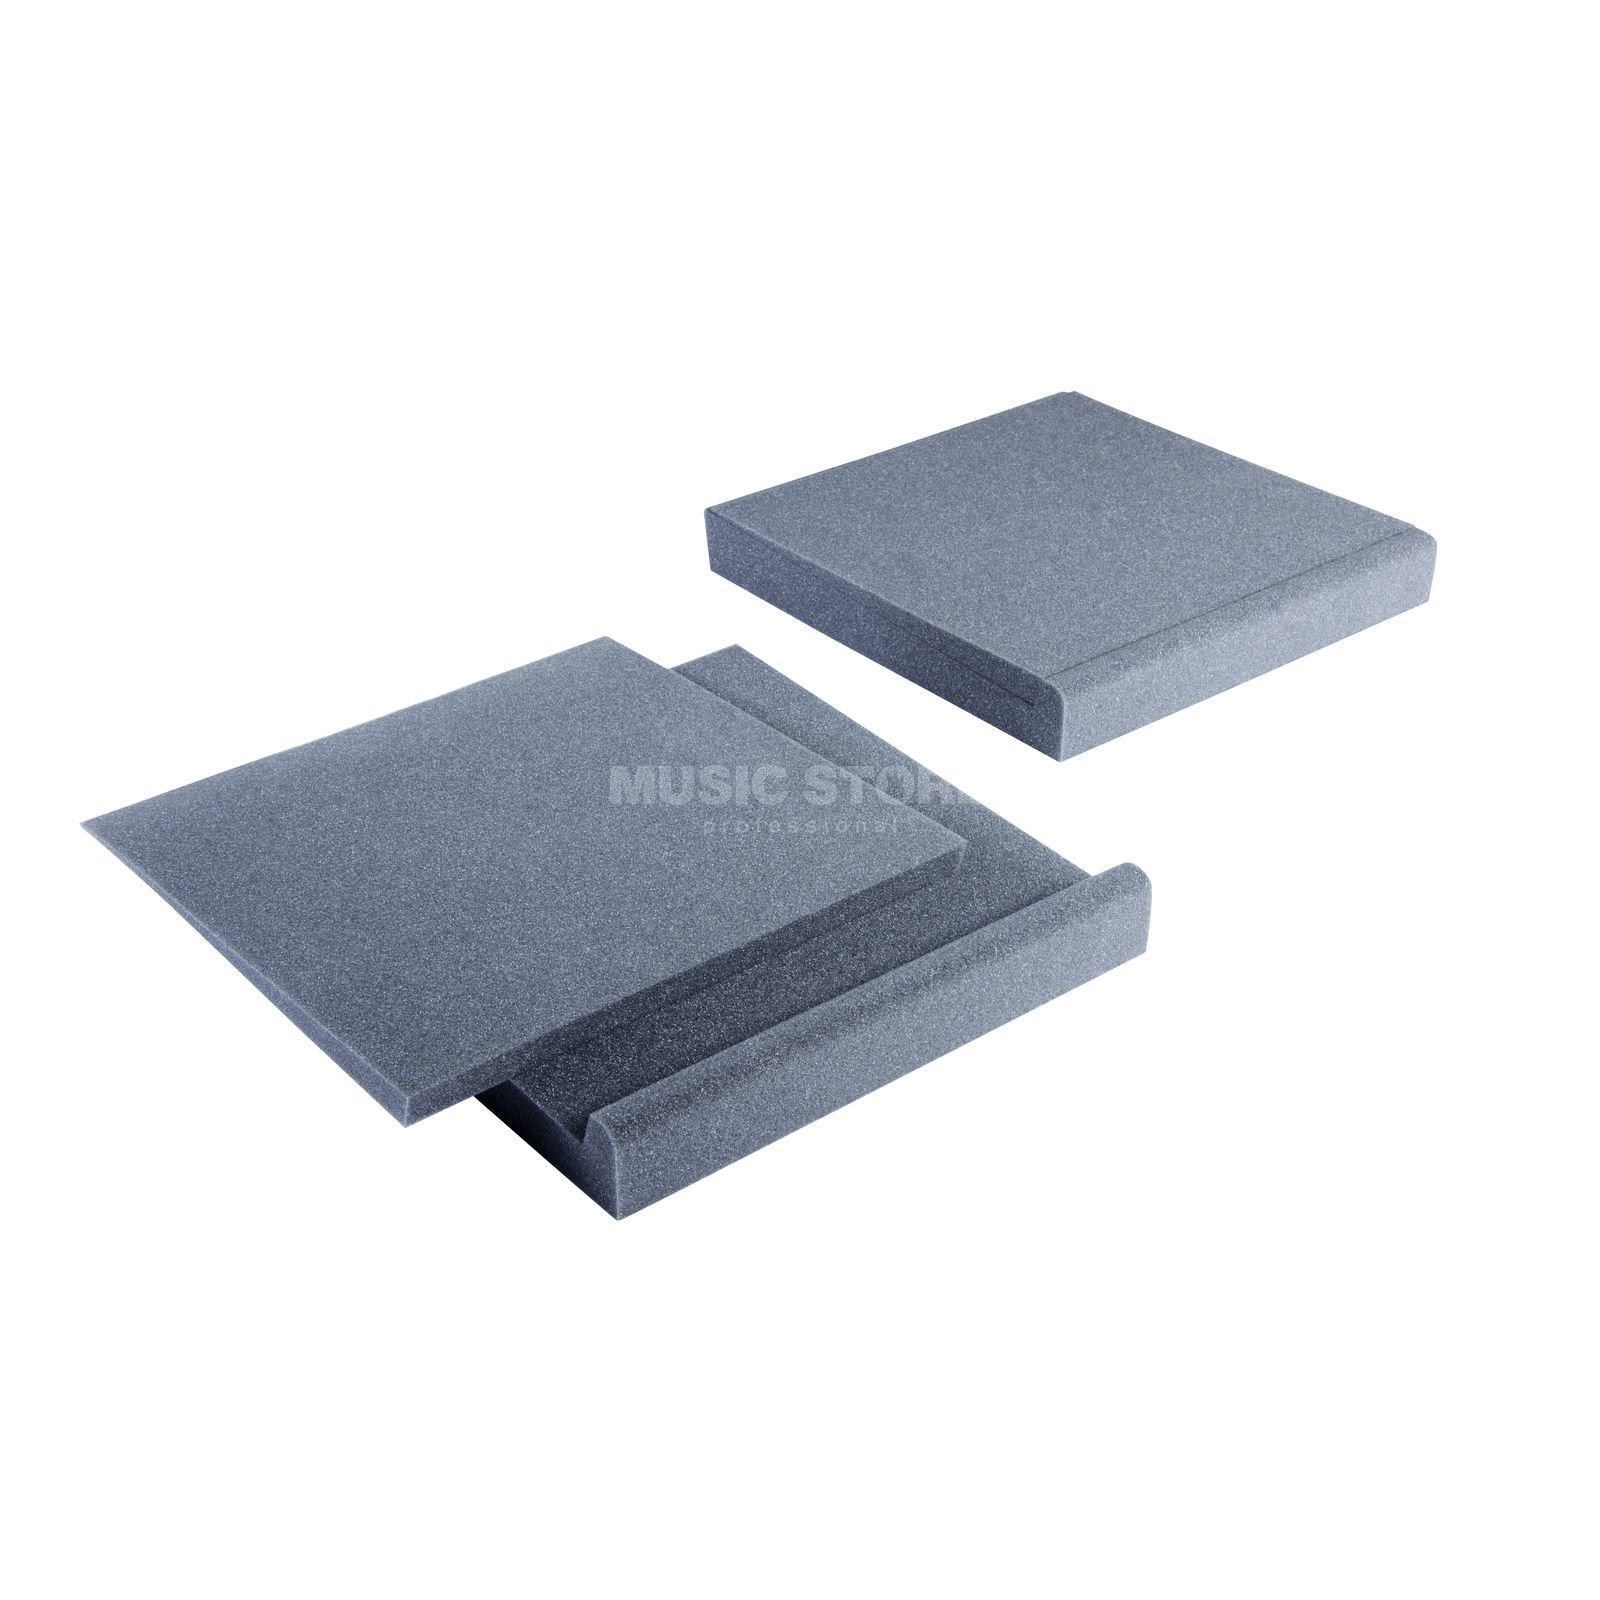 MUSIC STORE SpeakerPad Set M 300x200x40 mm Produktbild